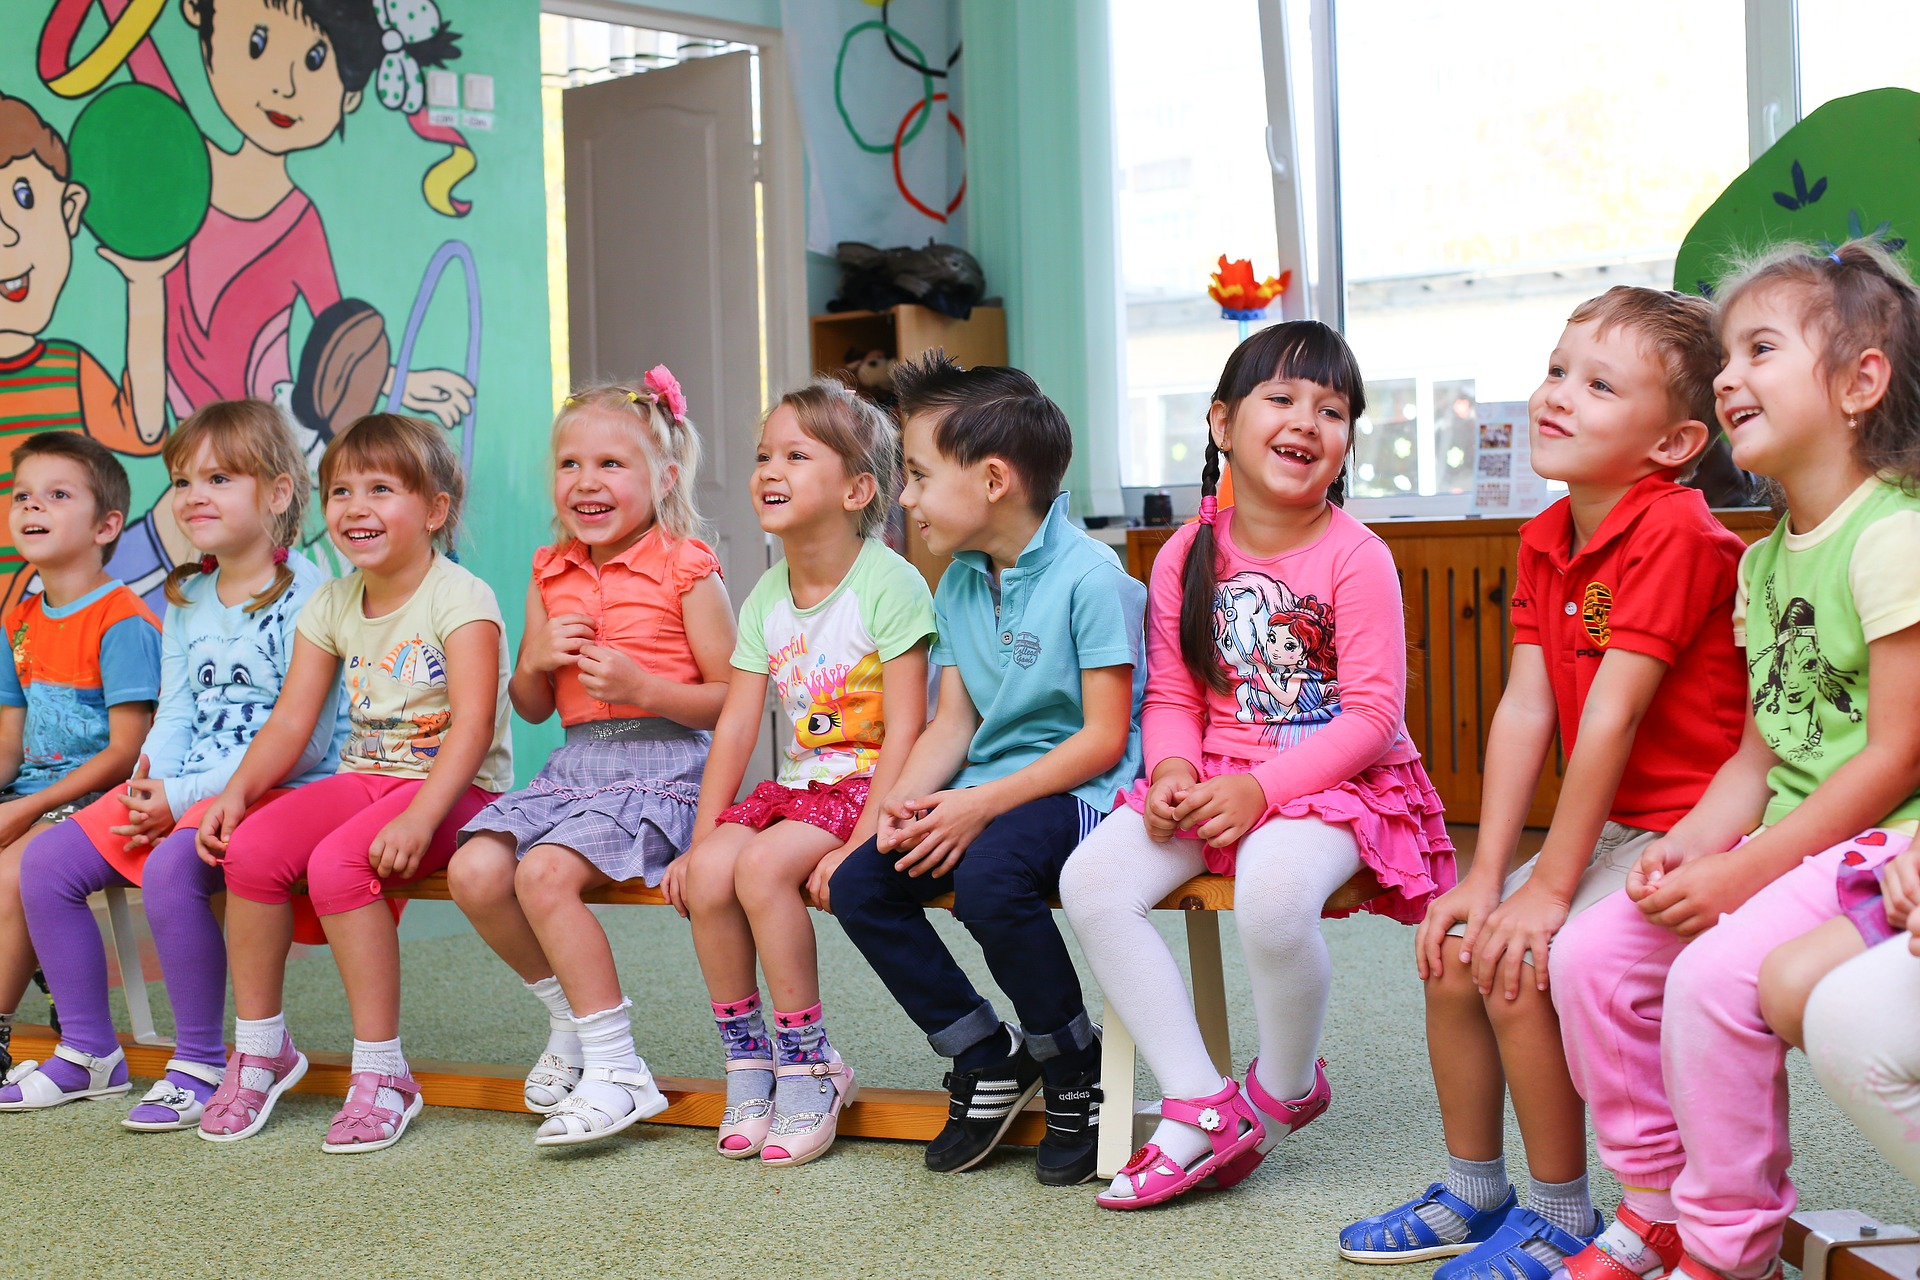 8 Things You Learned In Kindergarden Thatu0027ll Help You With Case Studies